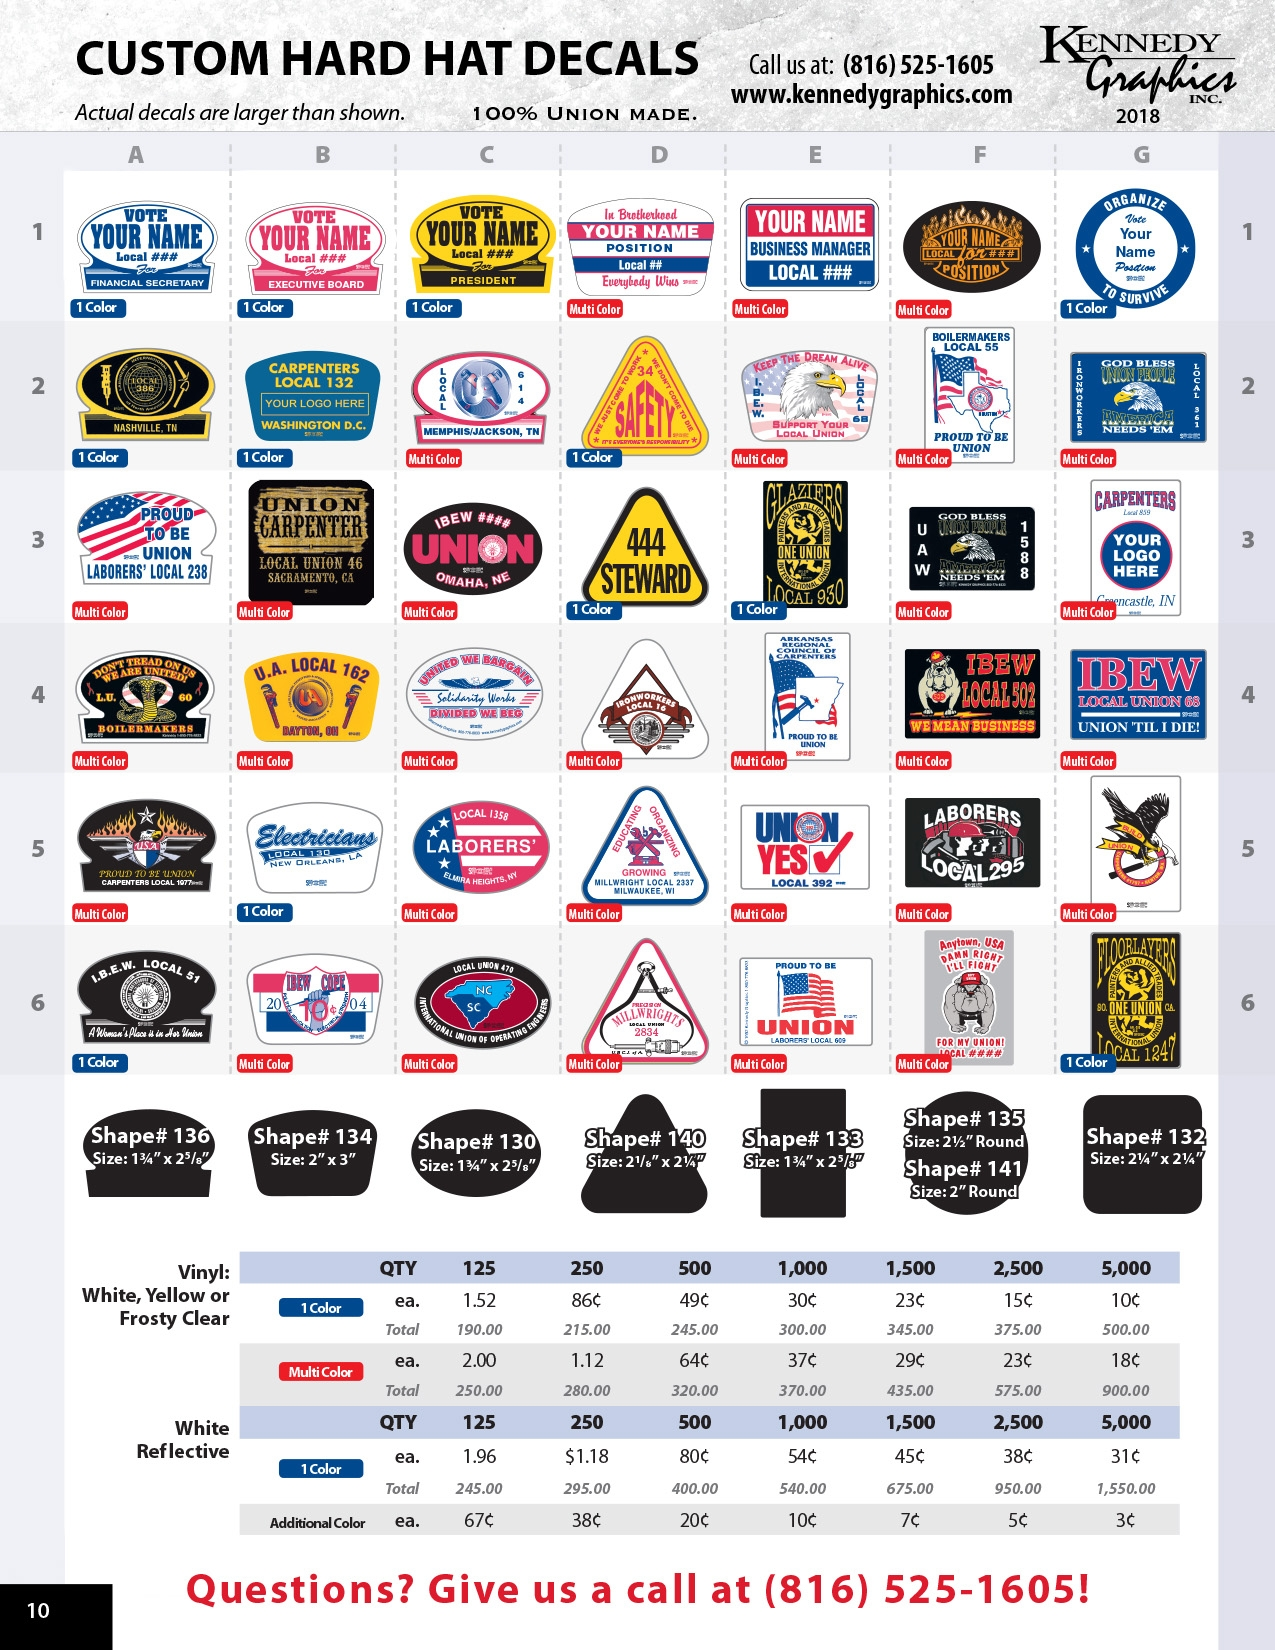 Kennedy Graphics Custom Hard Hat Decals 2018 catalog page 10